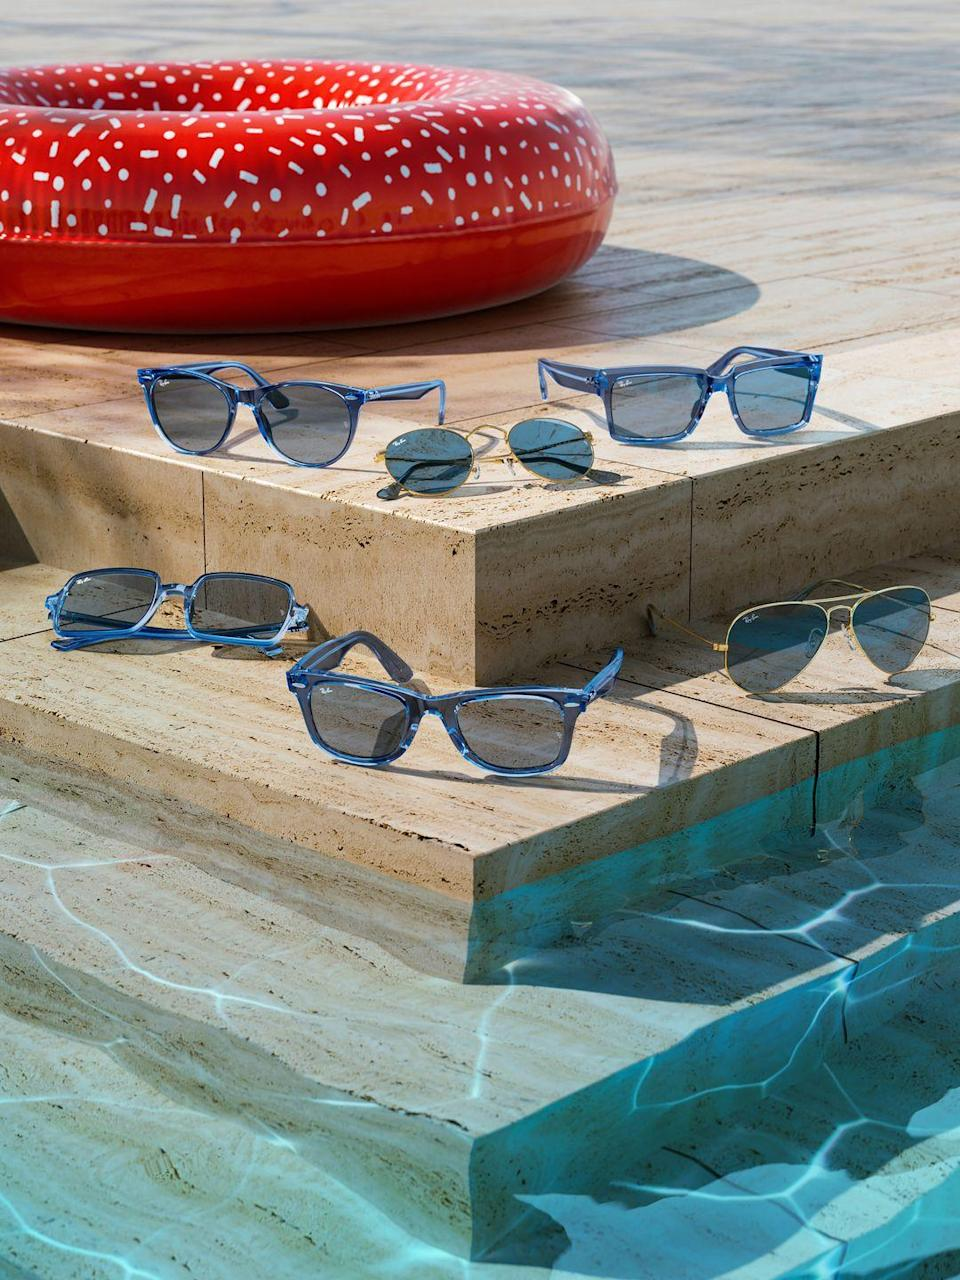 """<p><strong>Who: </strong>Ray-Ban</p><p><strong>What: </strong>True Blue Collection</p><p><strong>Where:</strong> Available on Ray-Ban.com from $161</p><p><strong>Why: </strong>Ray-Ban is releasing six of their most iconic shapes including the Wayfarer and Aviator in the perfect ocean blue. As per every Ray-Ban sunglass style, each pair is scratch-resistant to ensure the cool blue color keeps its shine all summer long. Even if you can't make it to Mykonos, you can have a piece of the irresistible azure water in your daily wardrobe. Styles are available now on Ray-Ban.com and wherever Ray-Bans are sold.</p><p><a class=""""link rapid-noclick-resp"""" href=""""https://go.redirectingat.com?id=74968X1596630&url=https%3A%2F%2Fwww.ray-ban.com%2Fusa&sref=https%3A%2F%2Fwww.elle.com%2Ffashion%2Fshopping%2Fg36905733%2Fthe-launch-julys-hottest-fashion-drops%2F"""" rel=""""nofollow noopener"""" target=""""_blank"""" data-ylk=""""slk:SHOP NOW"""">SHOP NOW</a></p>"""